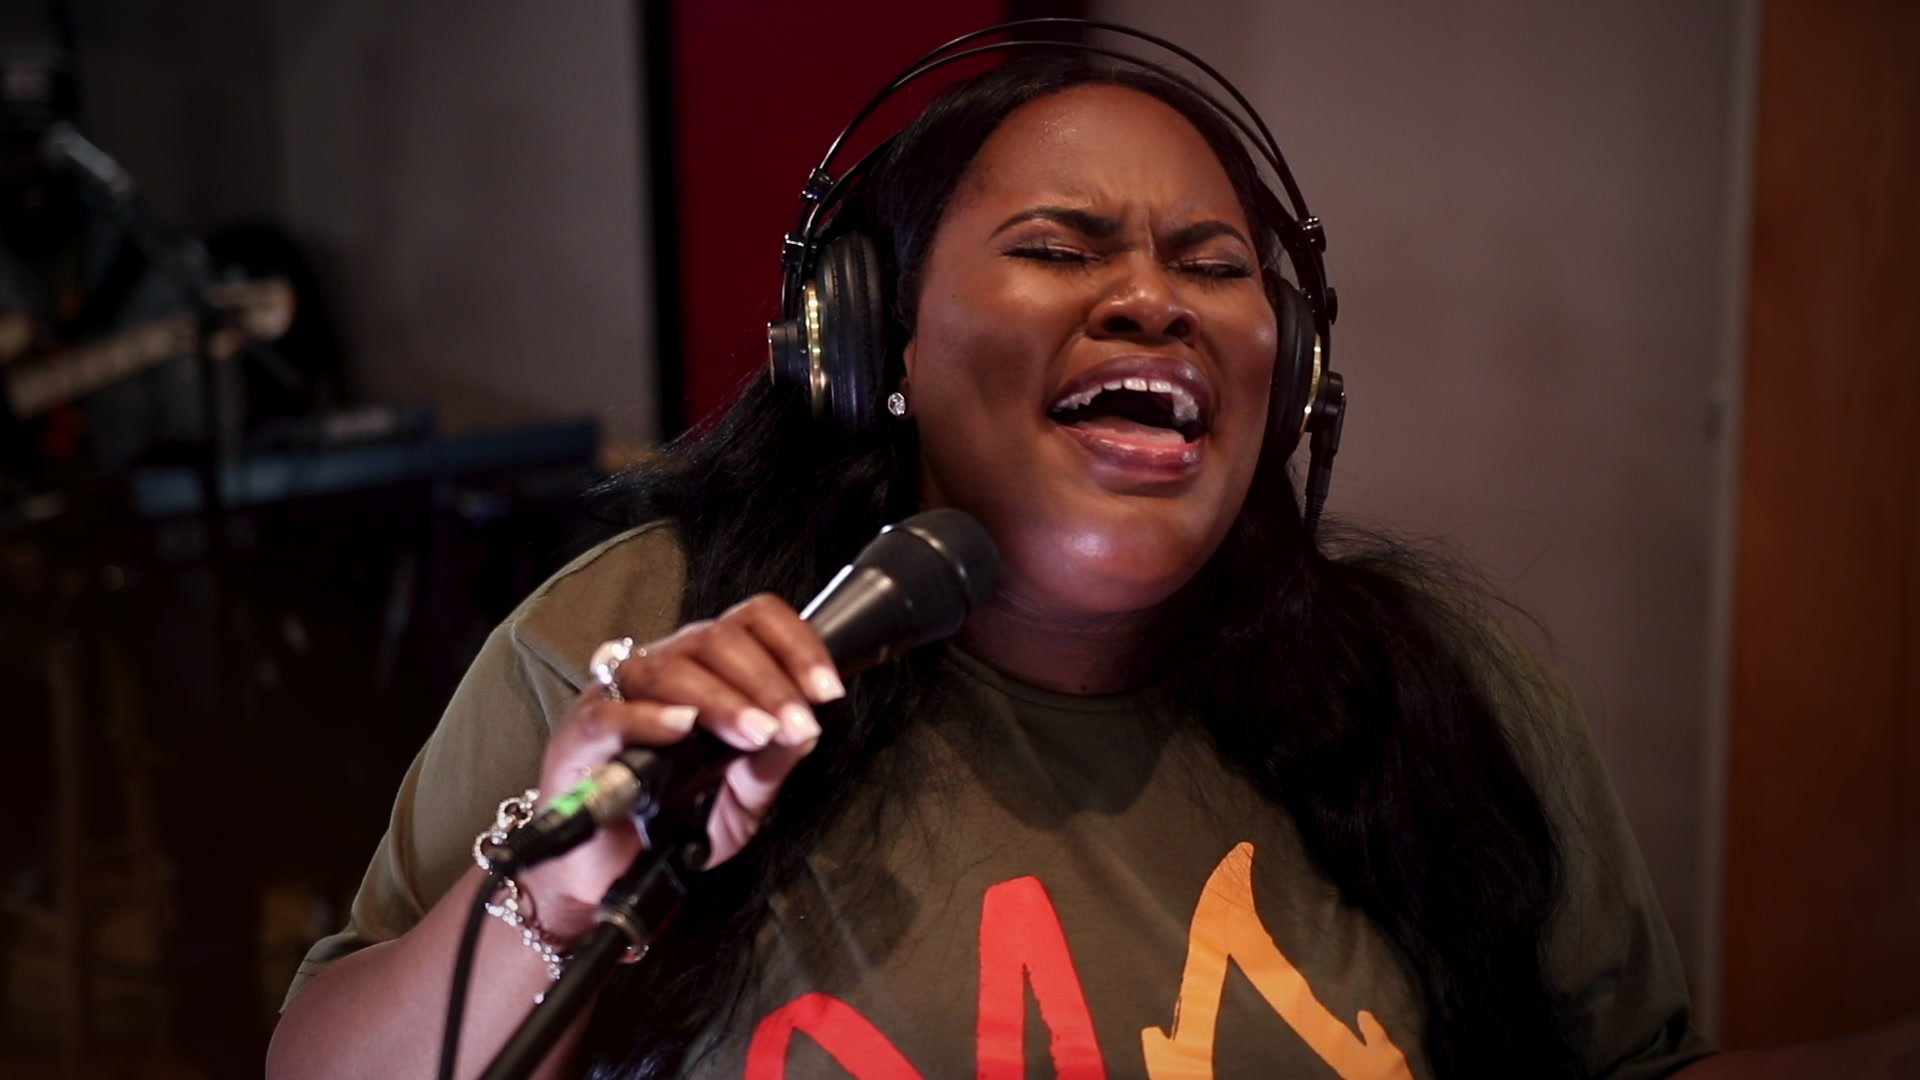 THE NAME OF OUR GOD BY TASHA COBBS LEONARD MP3 DOWNLOAD